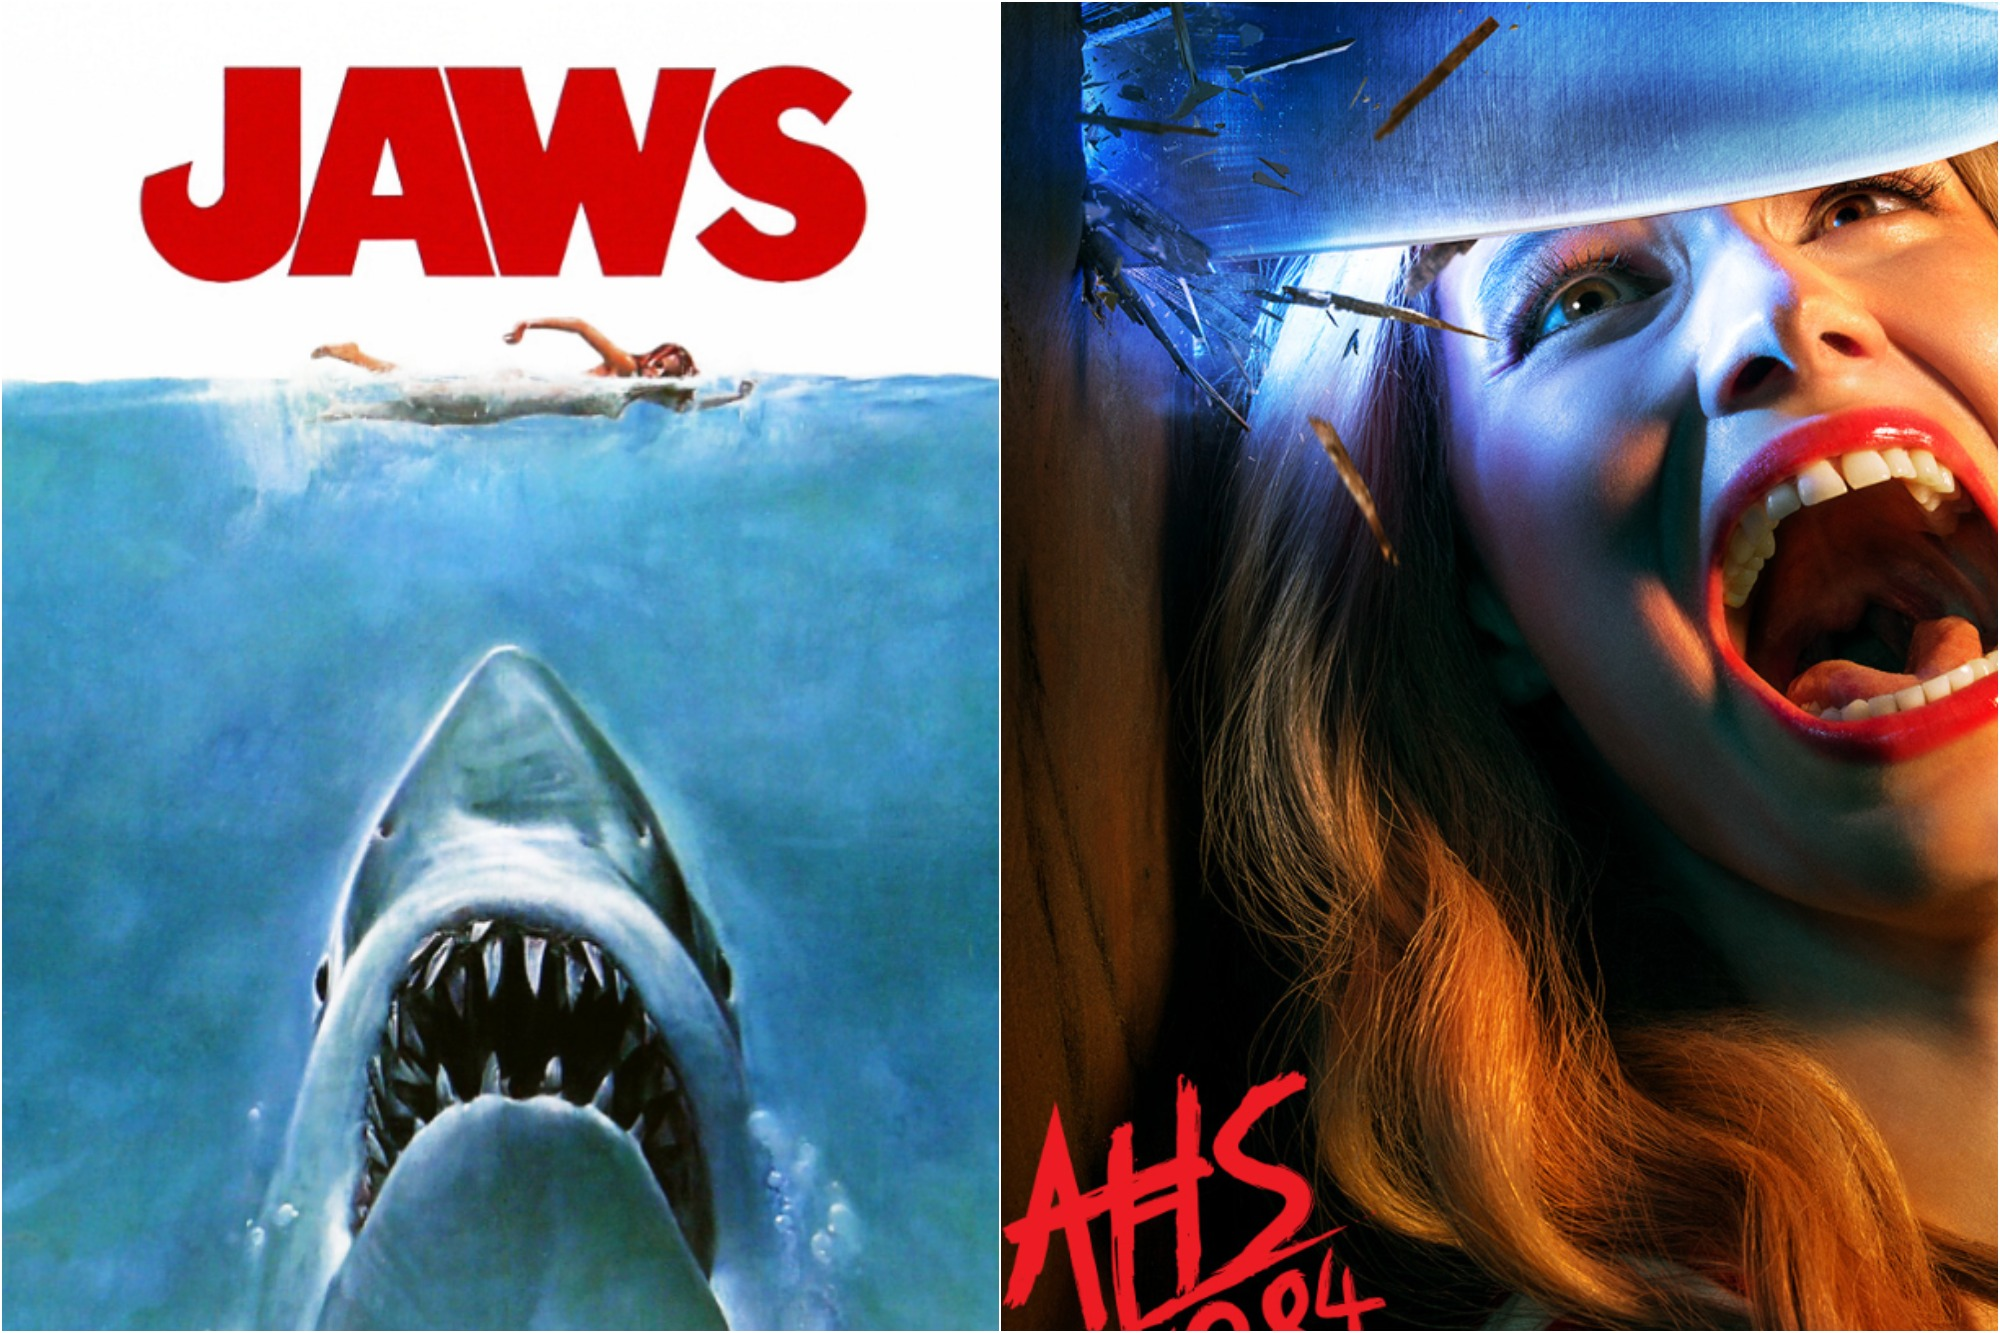 Poster for 'Jaws,' a 1975 American Thriller film directed by Steven Spielberg / Poster for Season 9 of 'American Horror Story: 1984.'